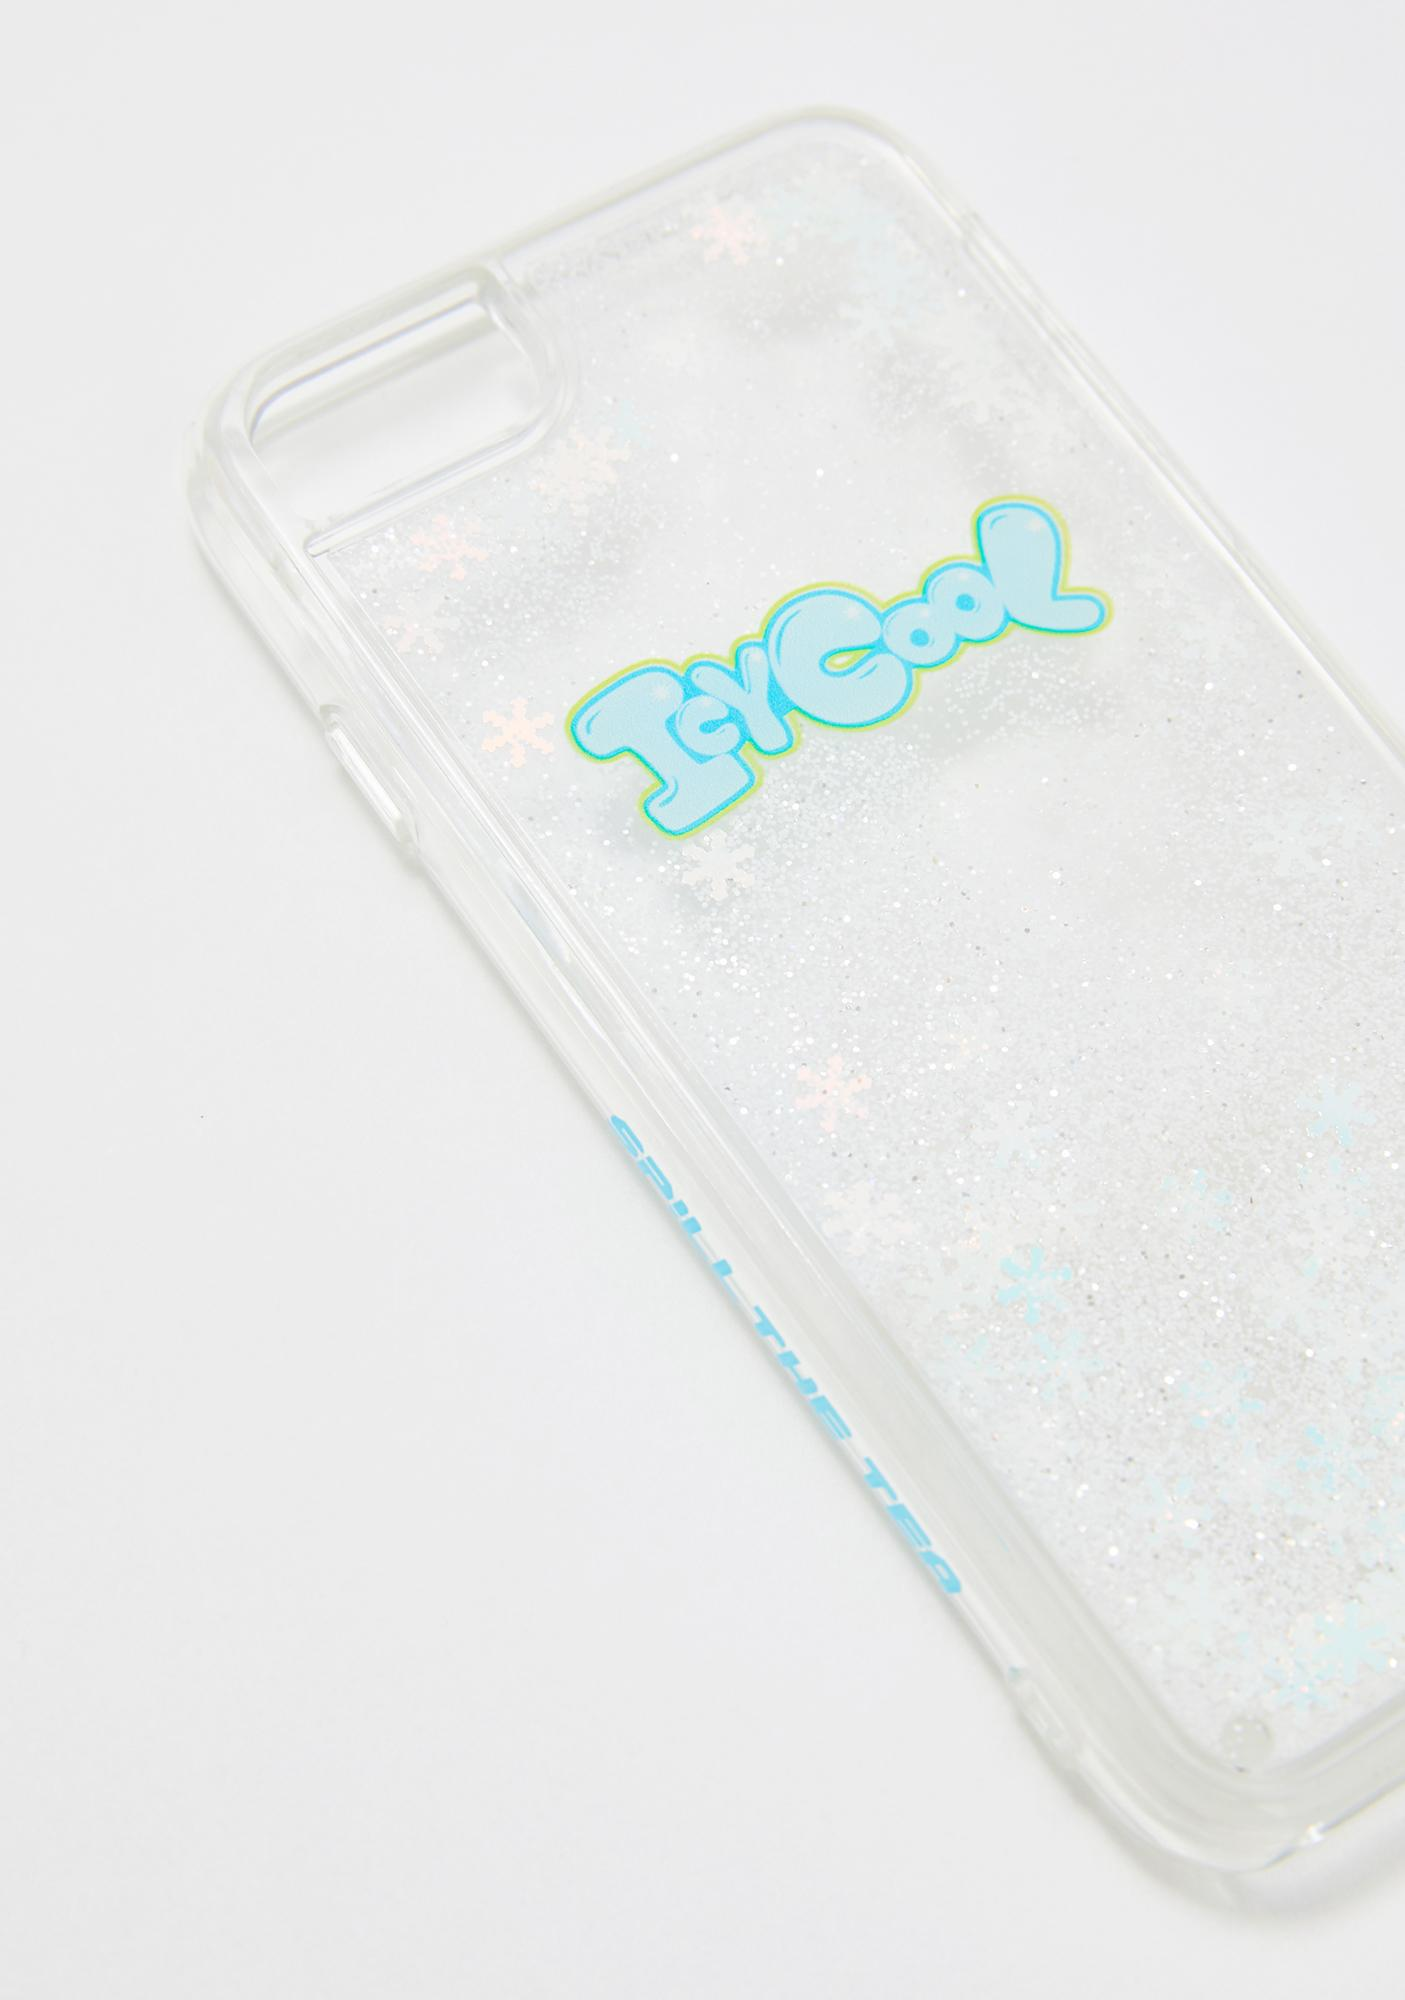 Spill The Tea Icy Cool Liquid iPhone Case